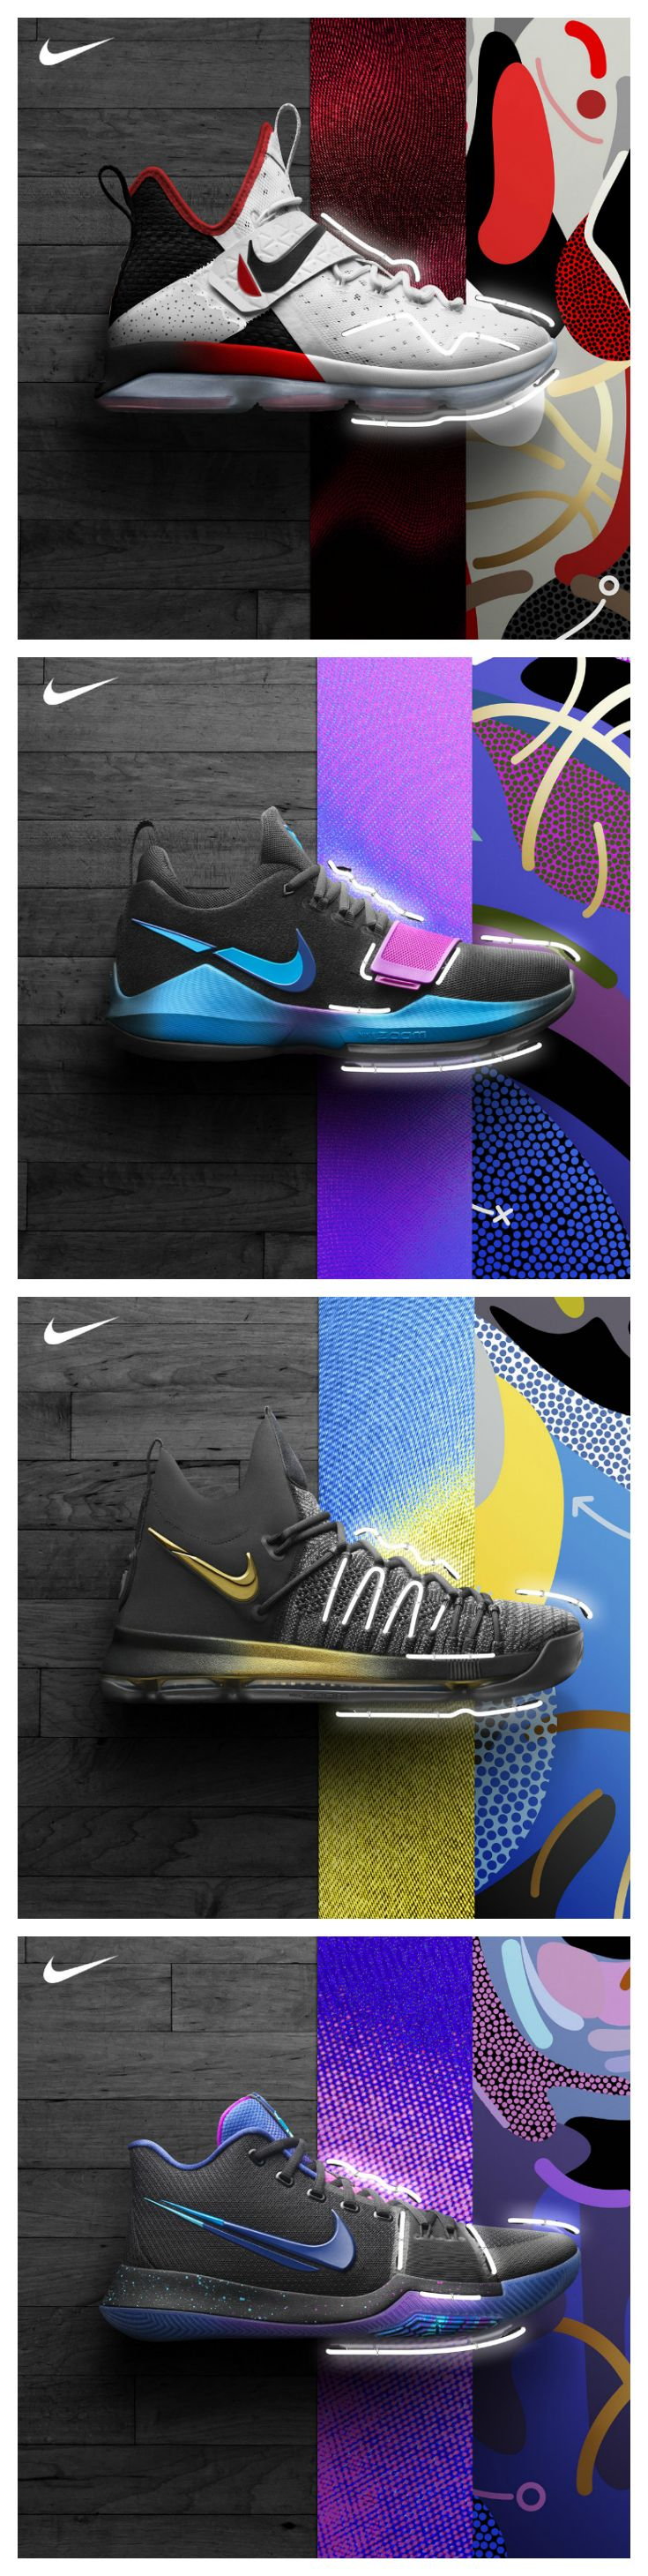 Shine bright on the game's biggest stage. New signature shoes from Nike Basketball are available now.